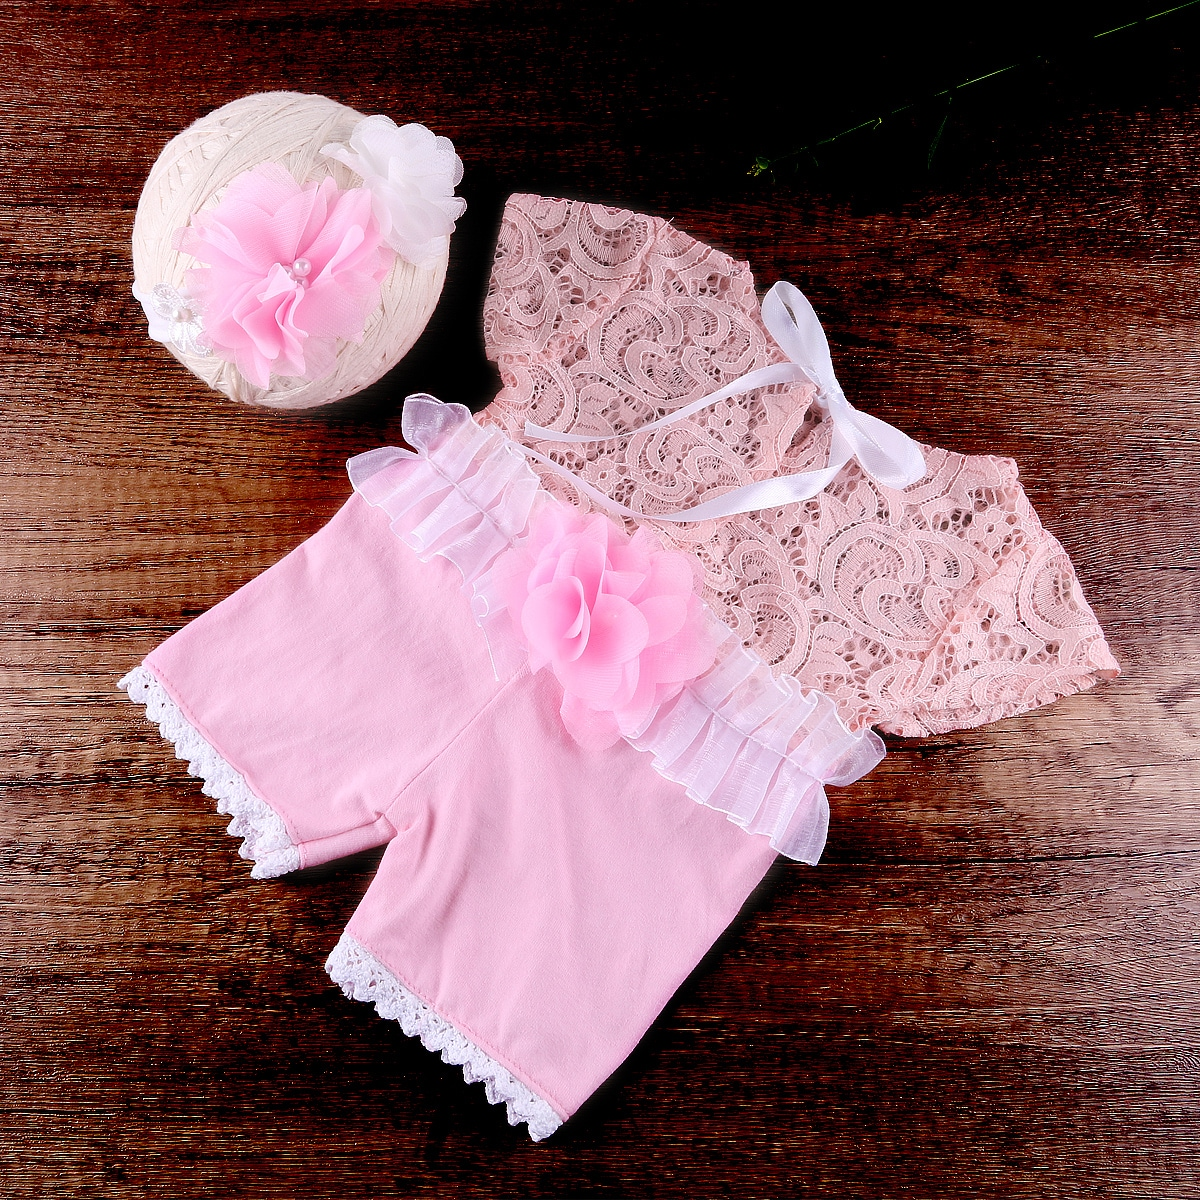 Newborn Girl Appliques Contrast Lace Romper With Headband Photo Outfit